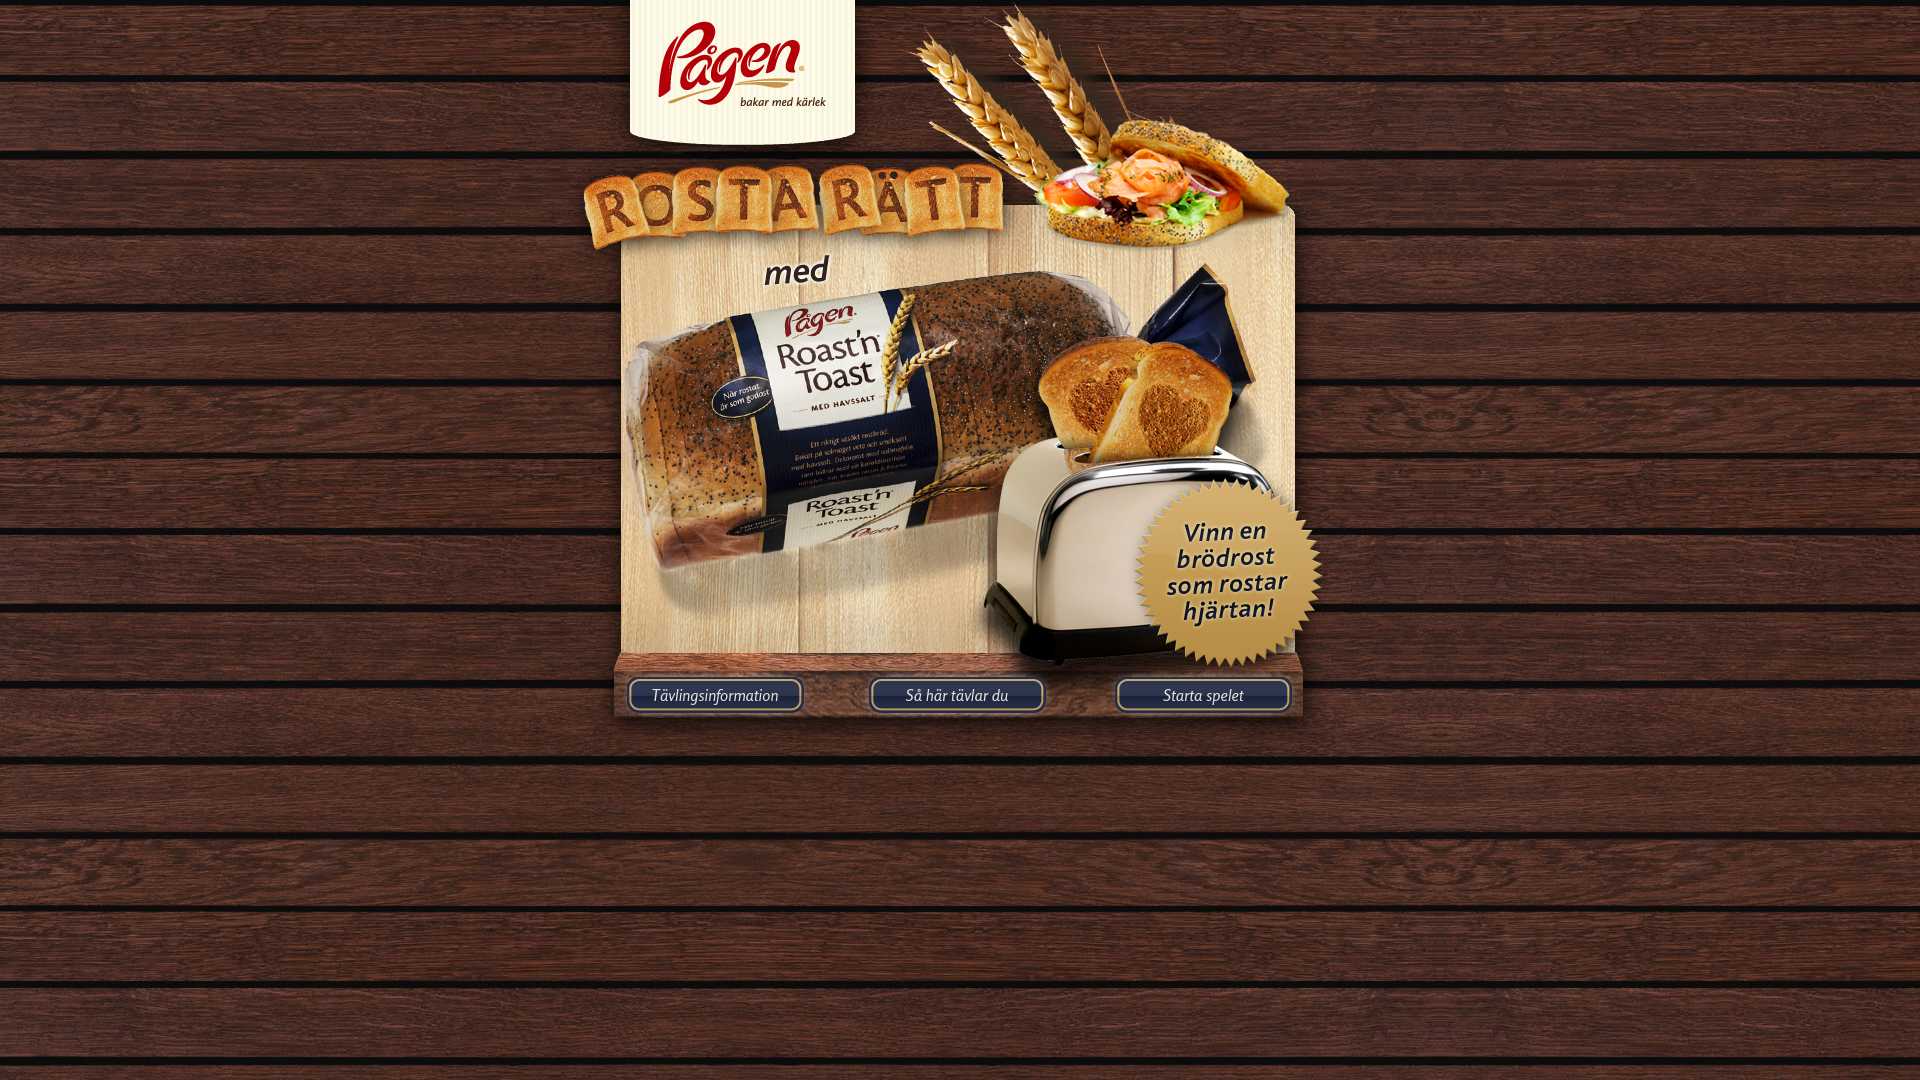 basilicon-pagen-roastntoast